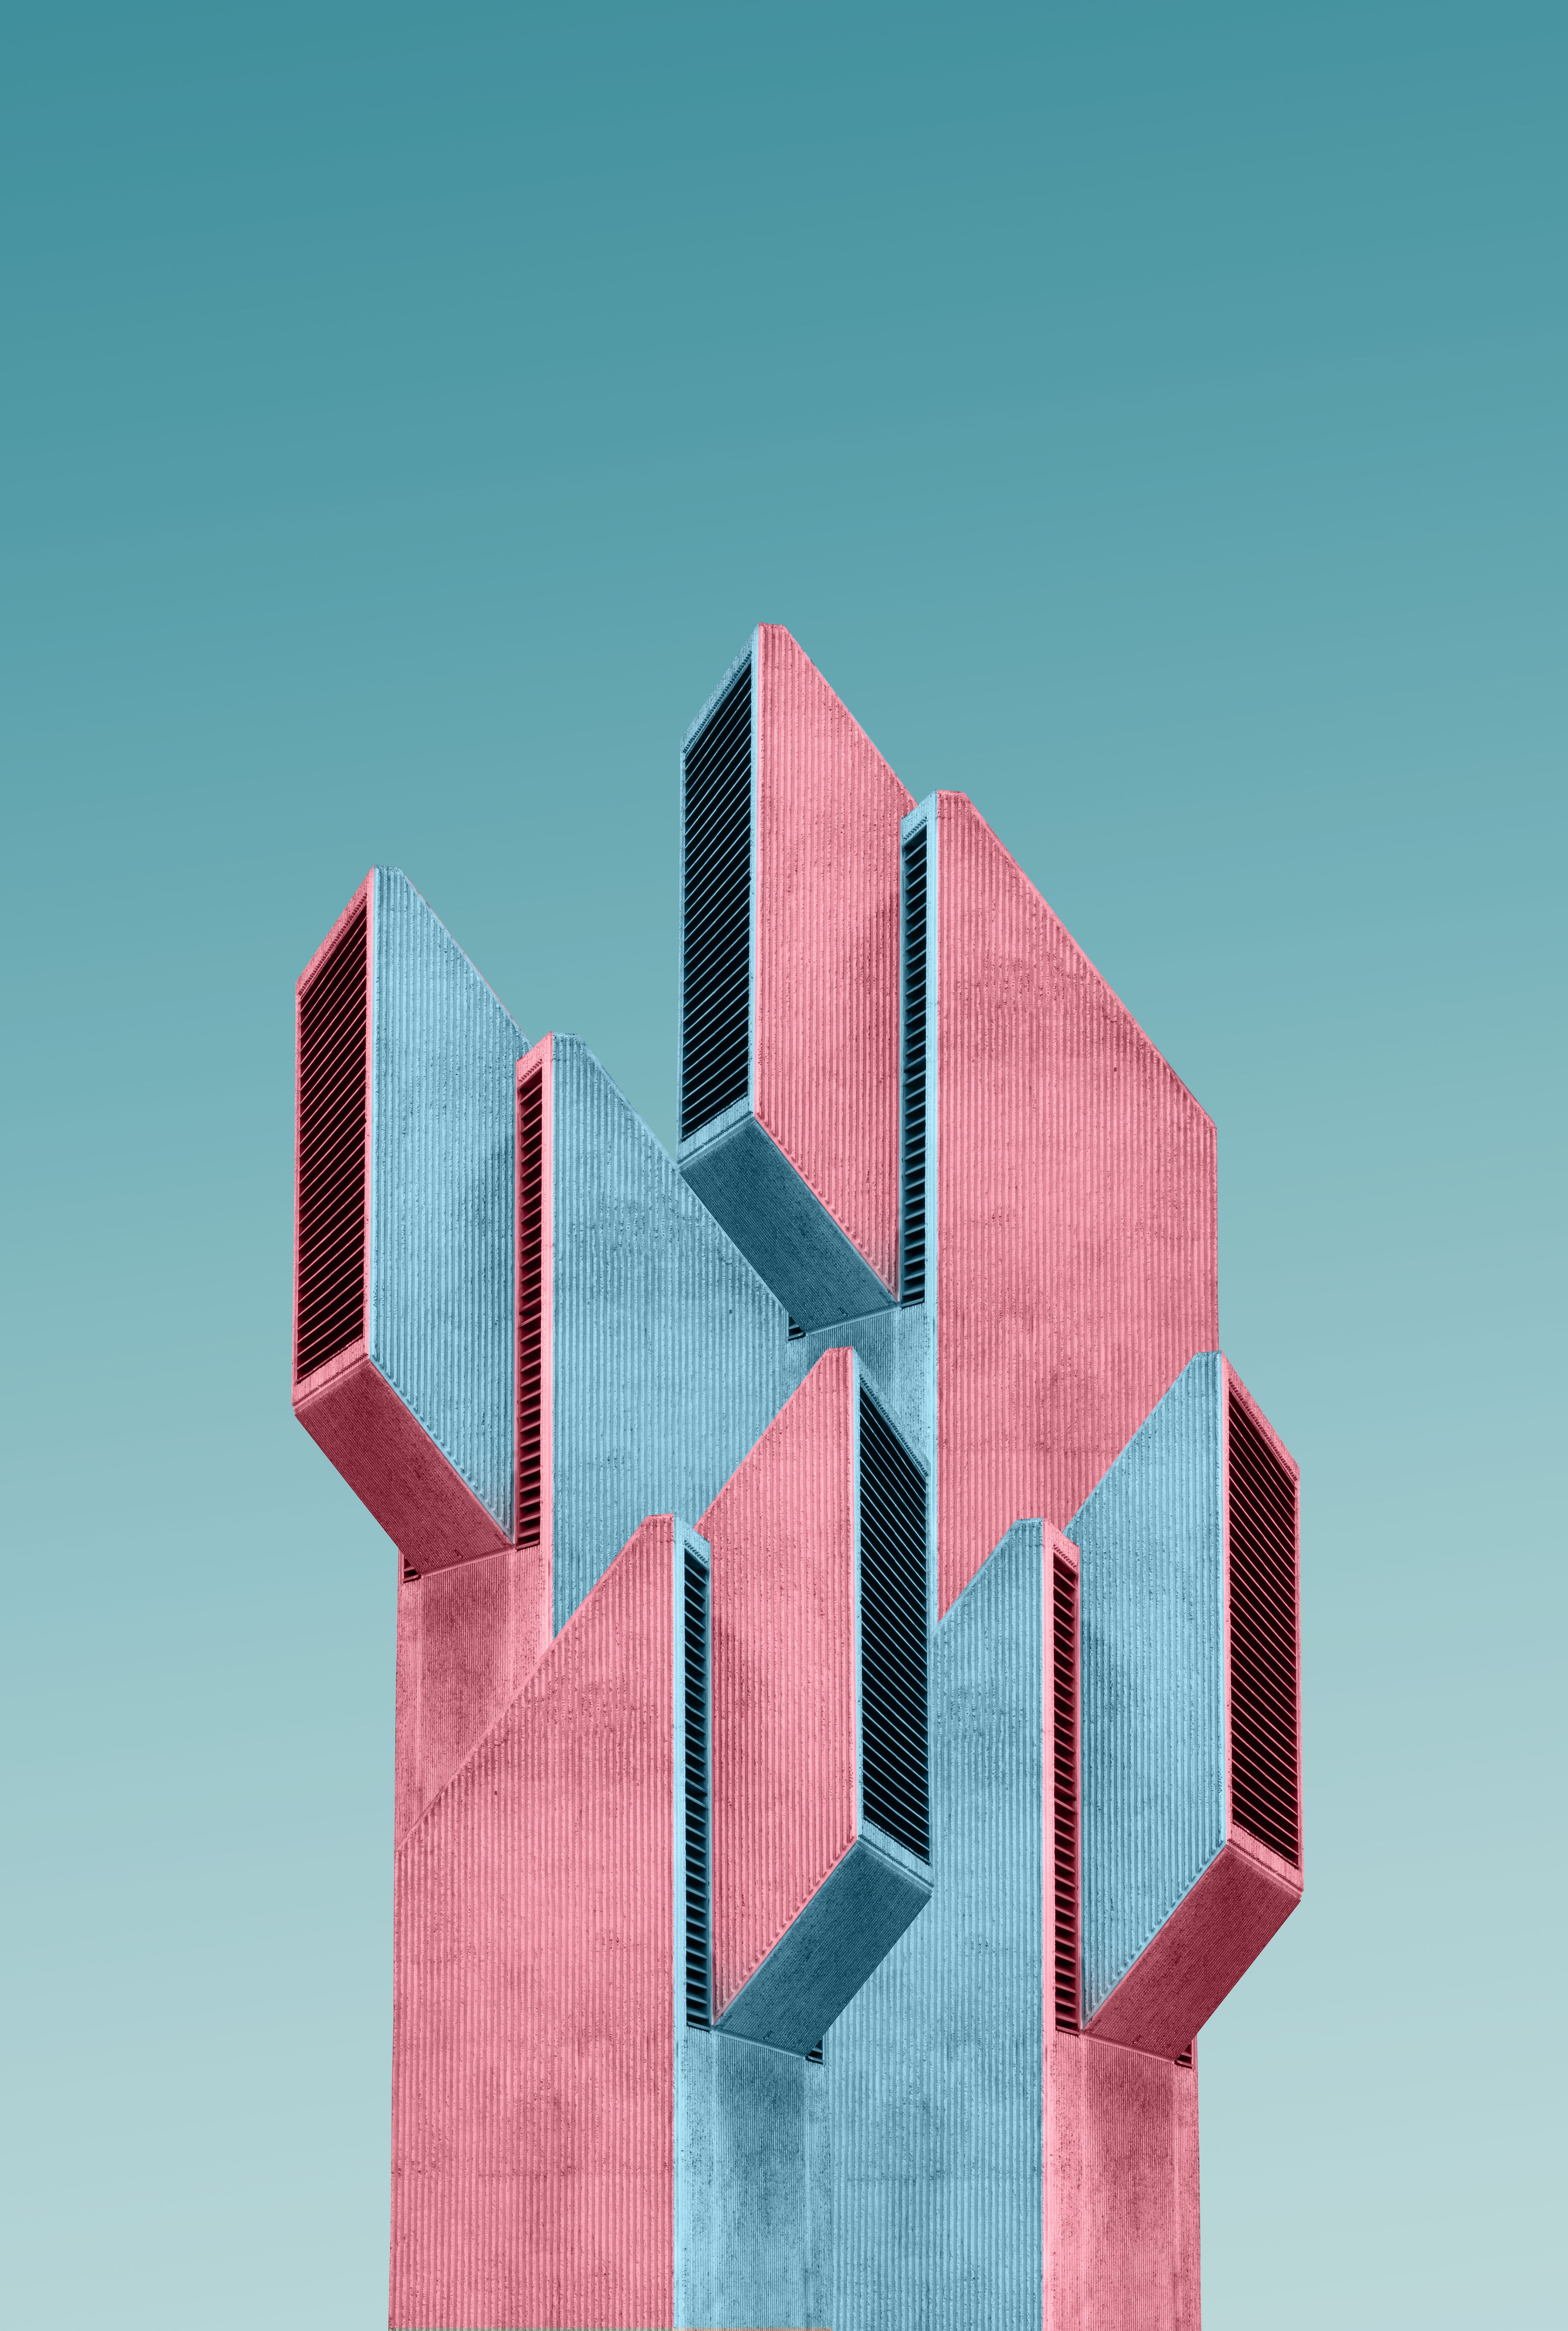 5 Days of Awesome Wallpapers Geometric and Architectural 5512x8192